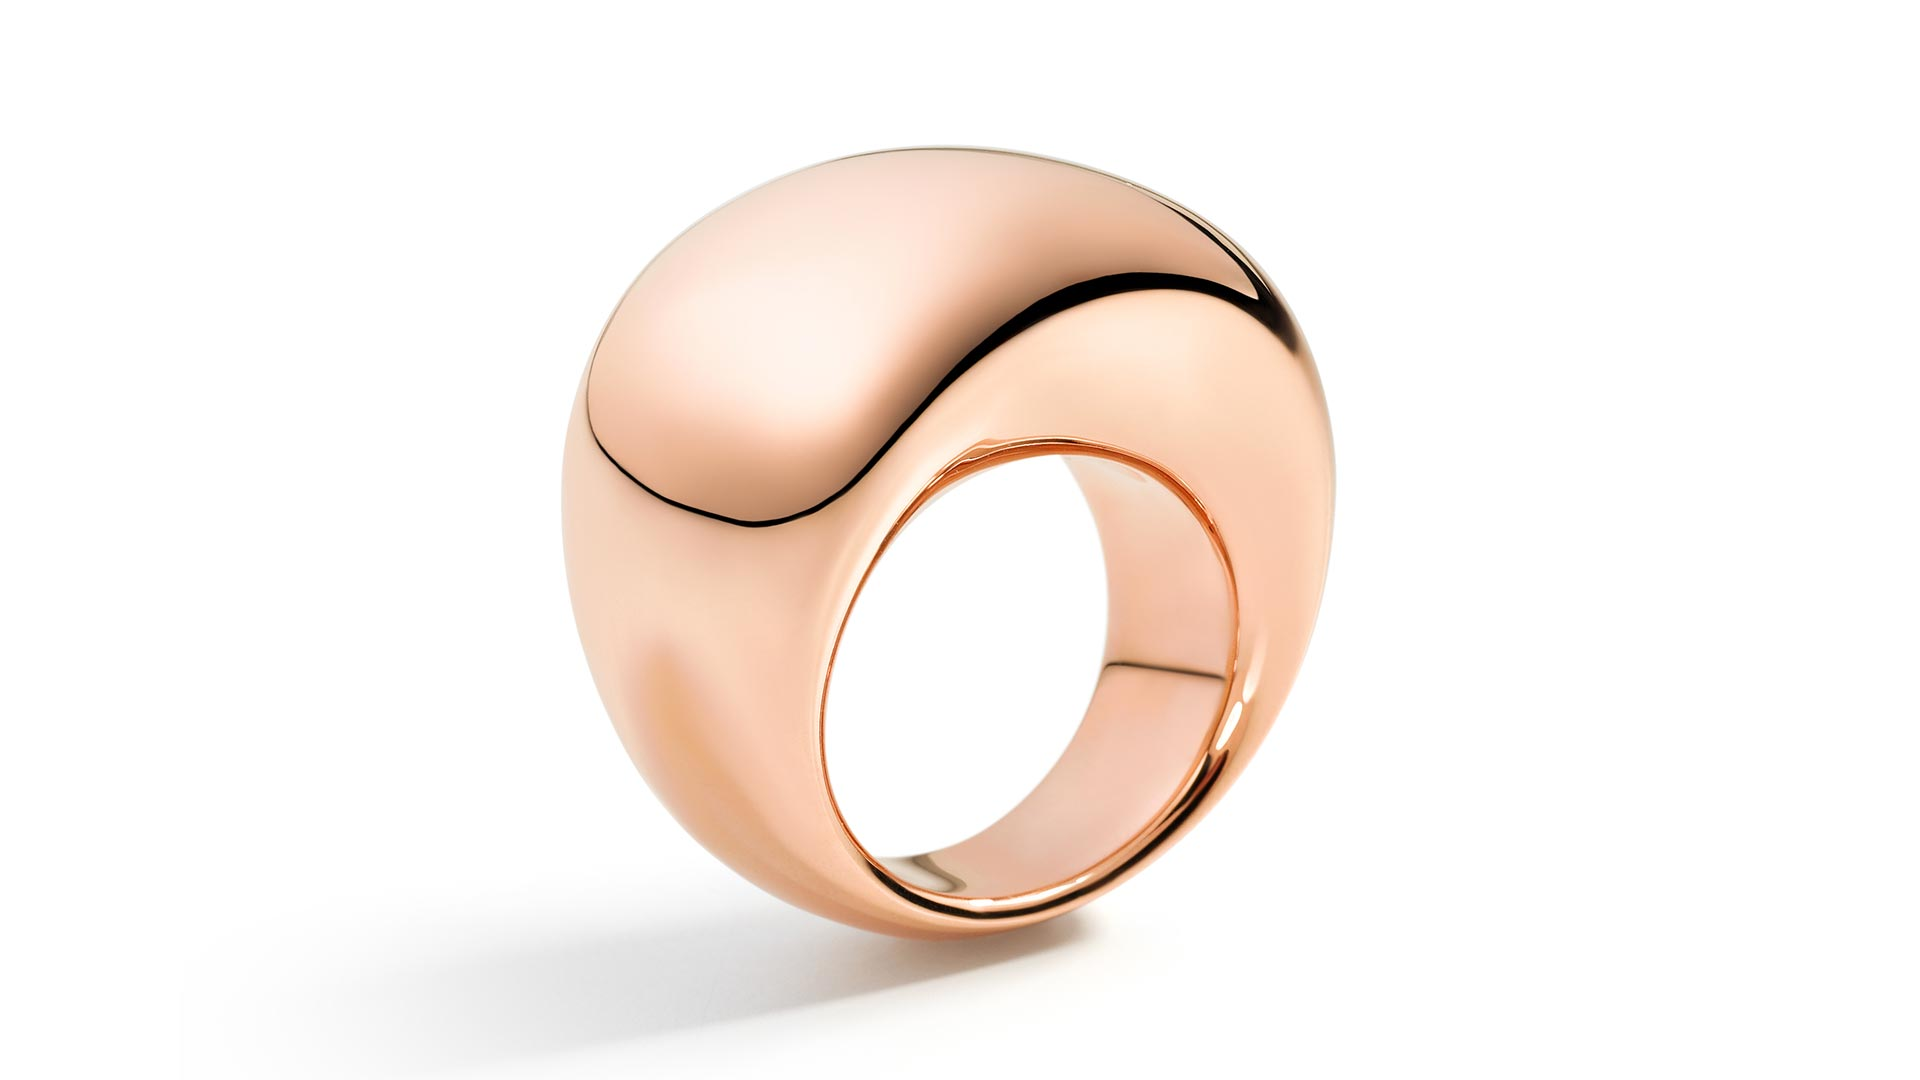 PIROUETTE RING